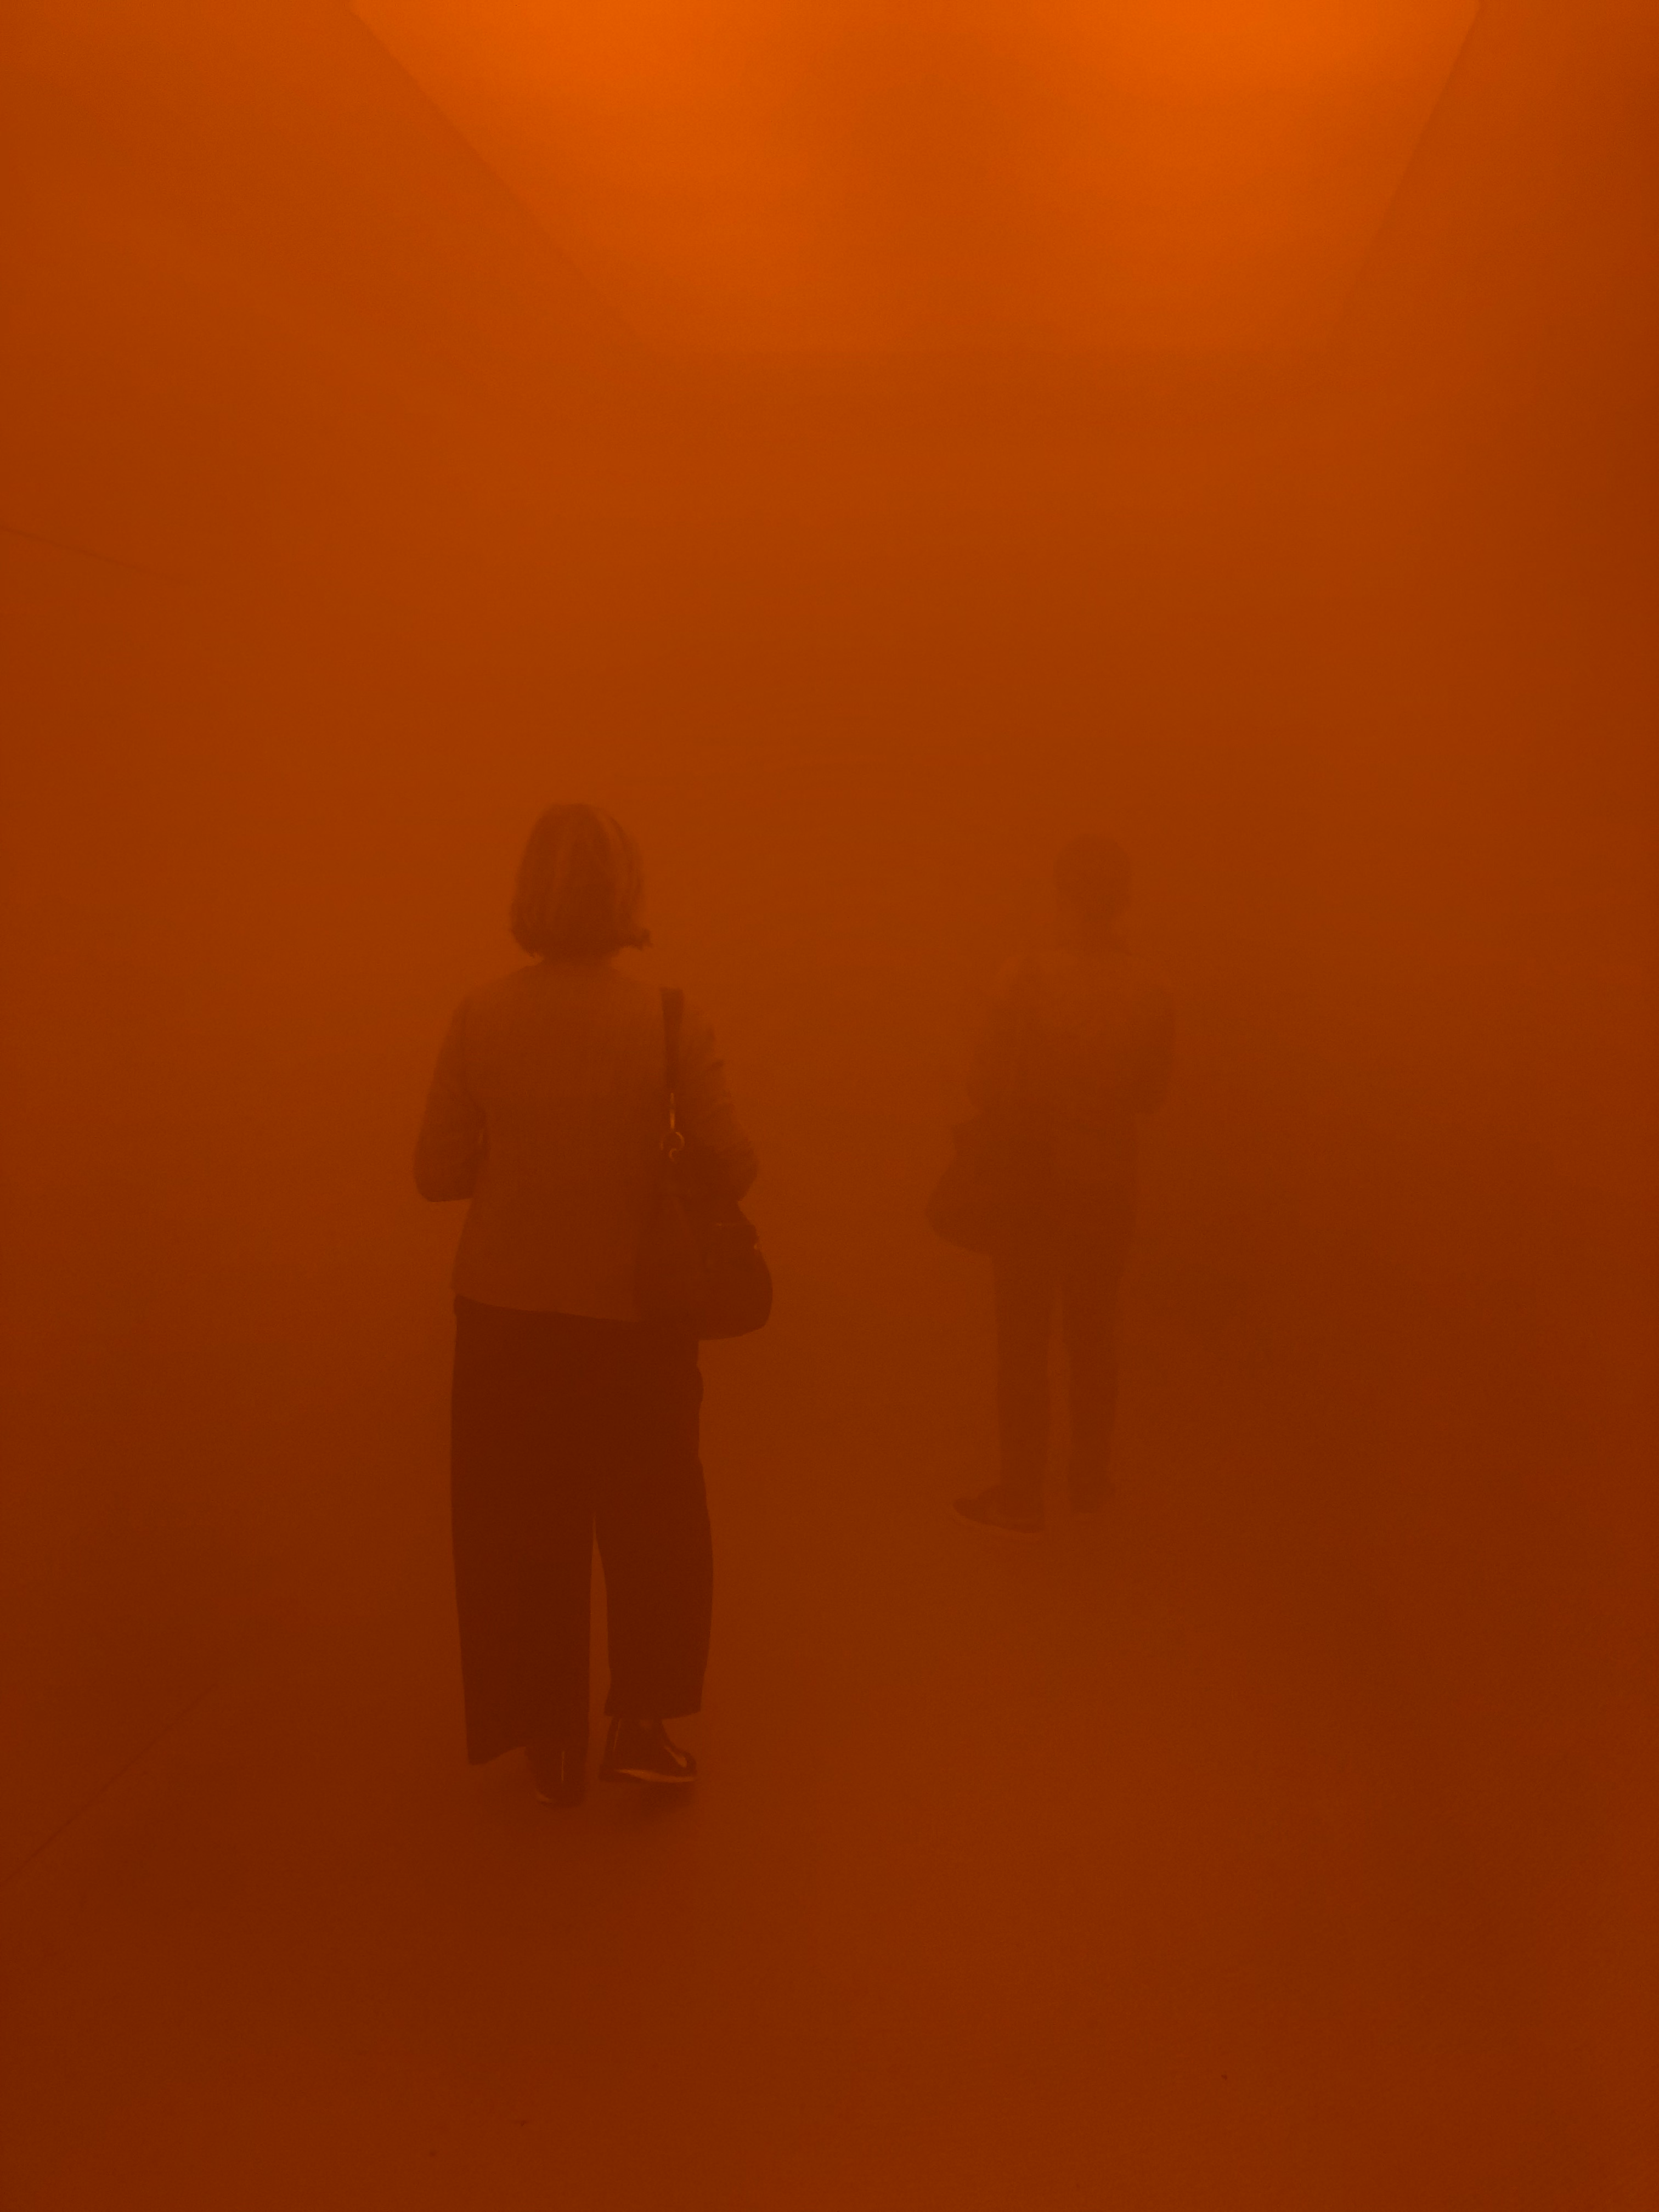 Your Blind Passenger By Olafur Eliasson (2010)